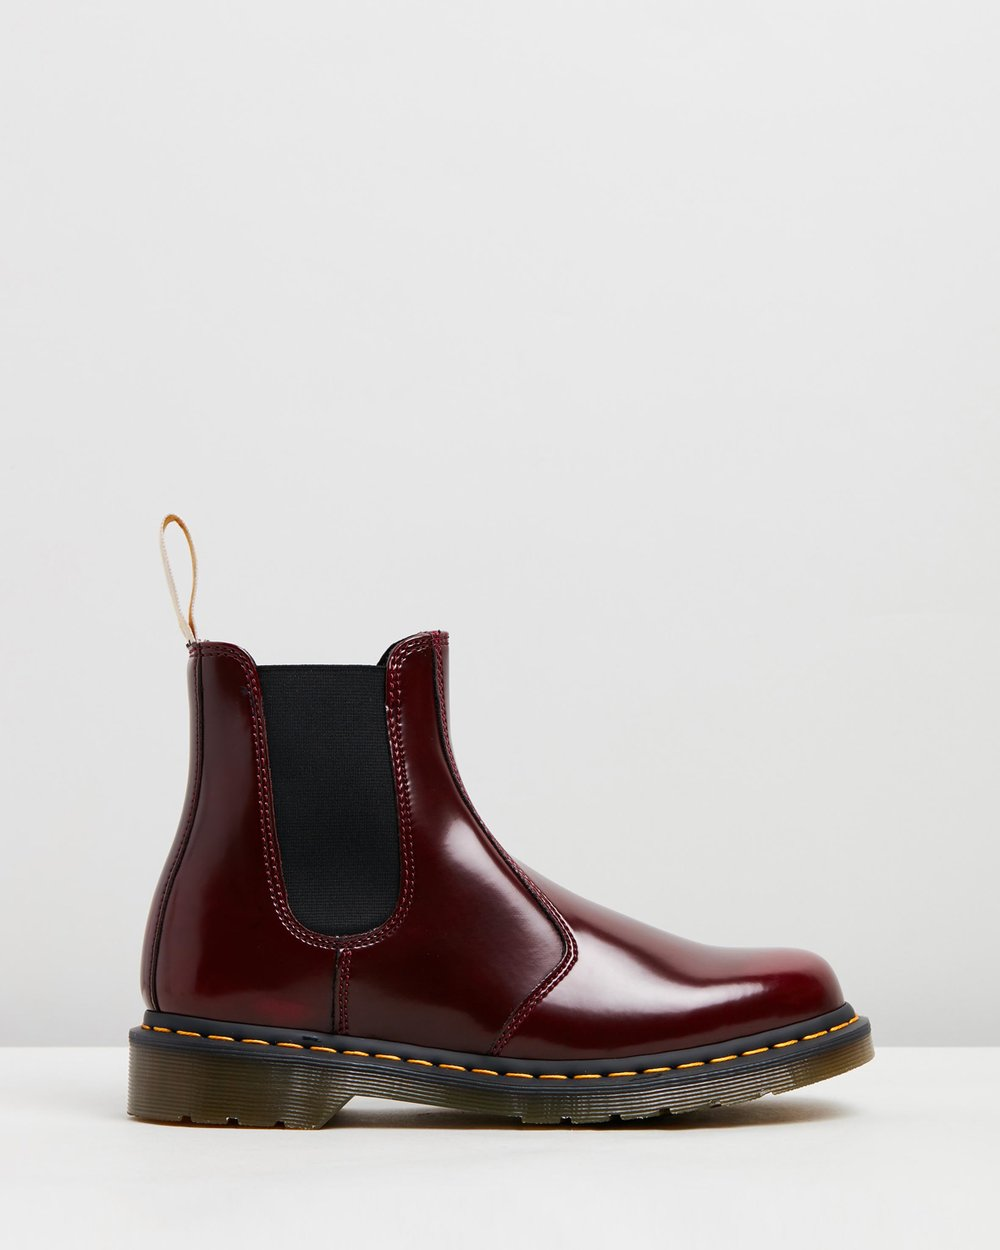 82bed794b Vegan 2976 Chelsea Boots - Unisex by Dr Martens Online